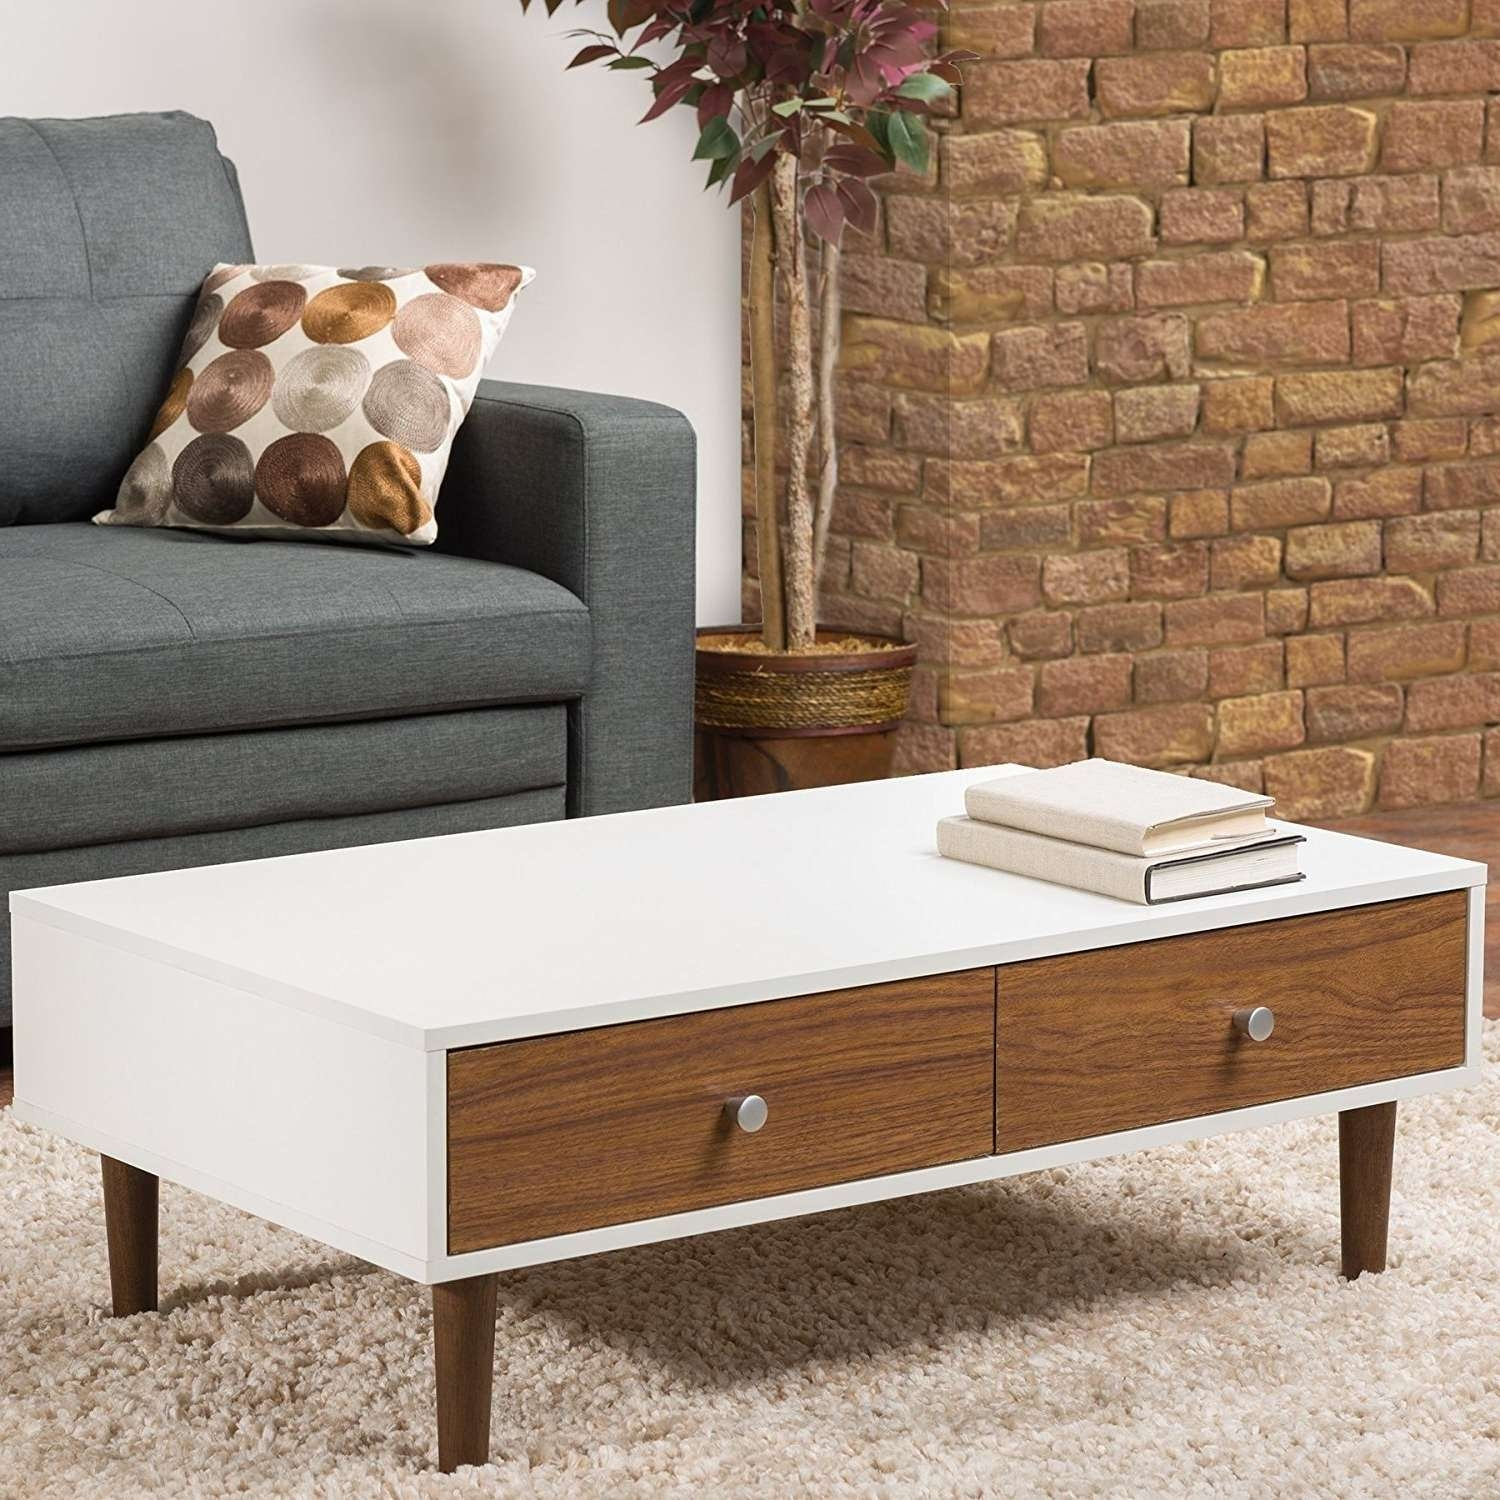 Coffee Tables : Splendid Pine Coffee Table Small Wooden Coffee Regarding Trendy Round Coffee Tables With Drawers (View 18 of 20)